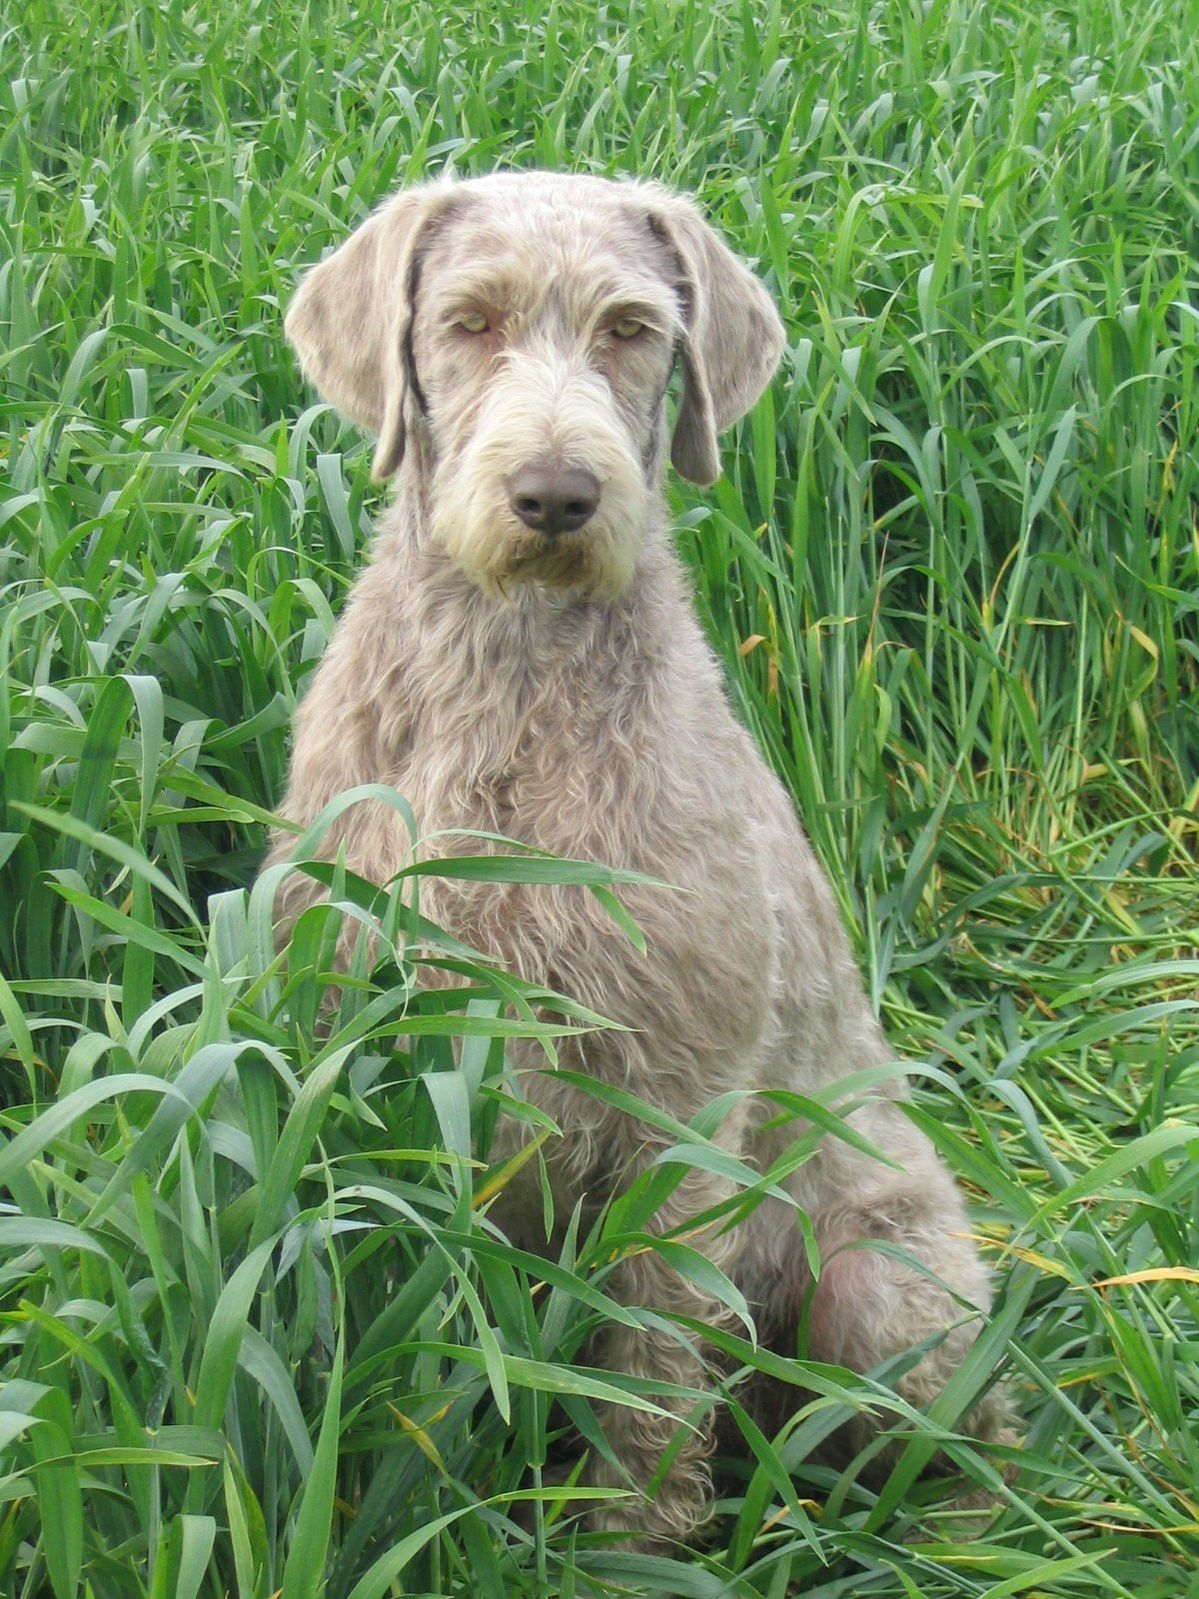 Slovakian Rough Haired Pointer - The complete information